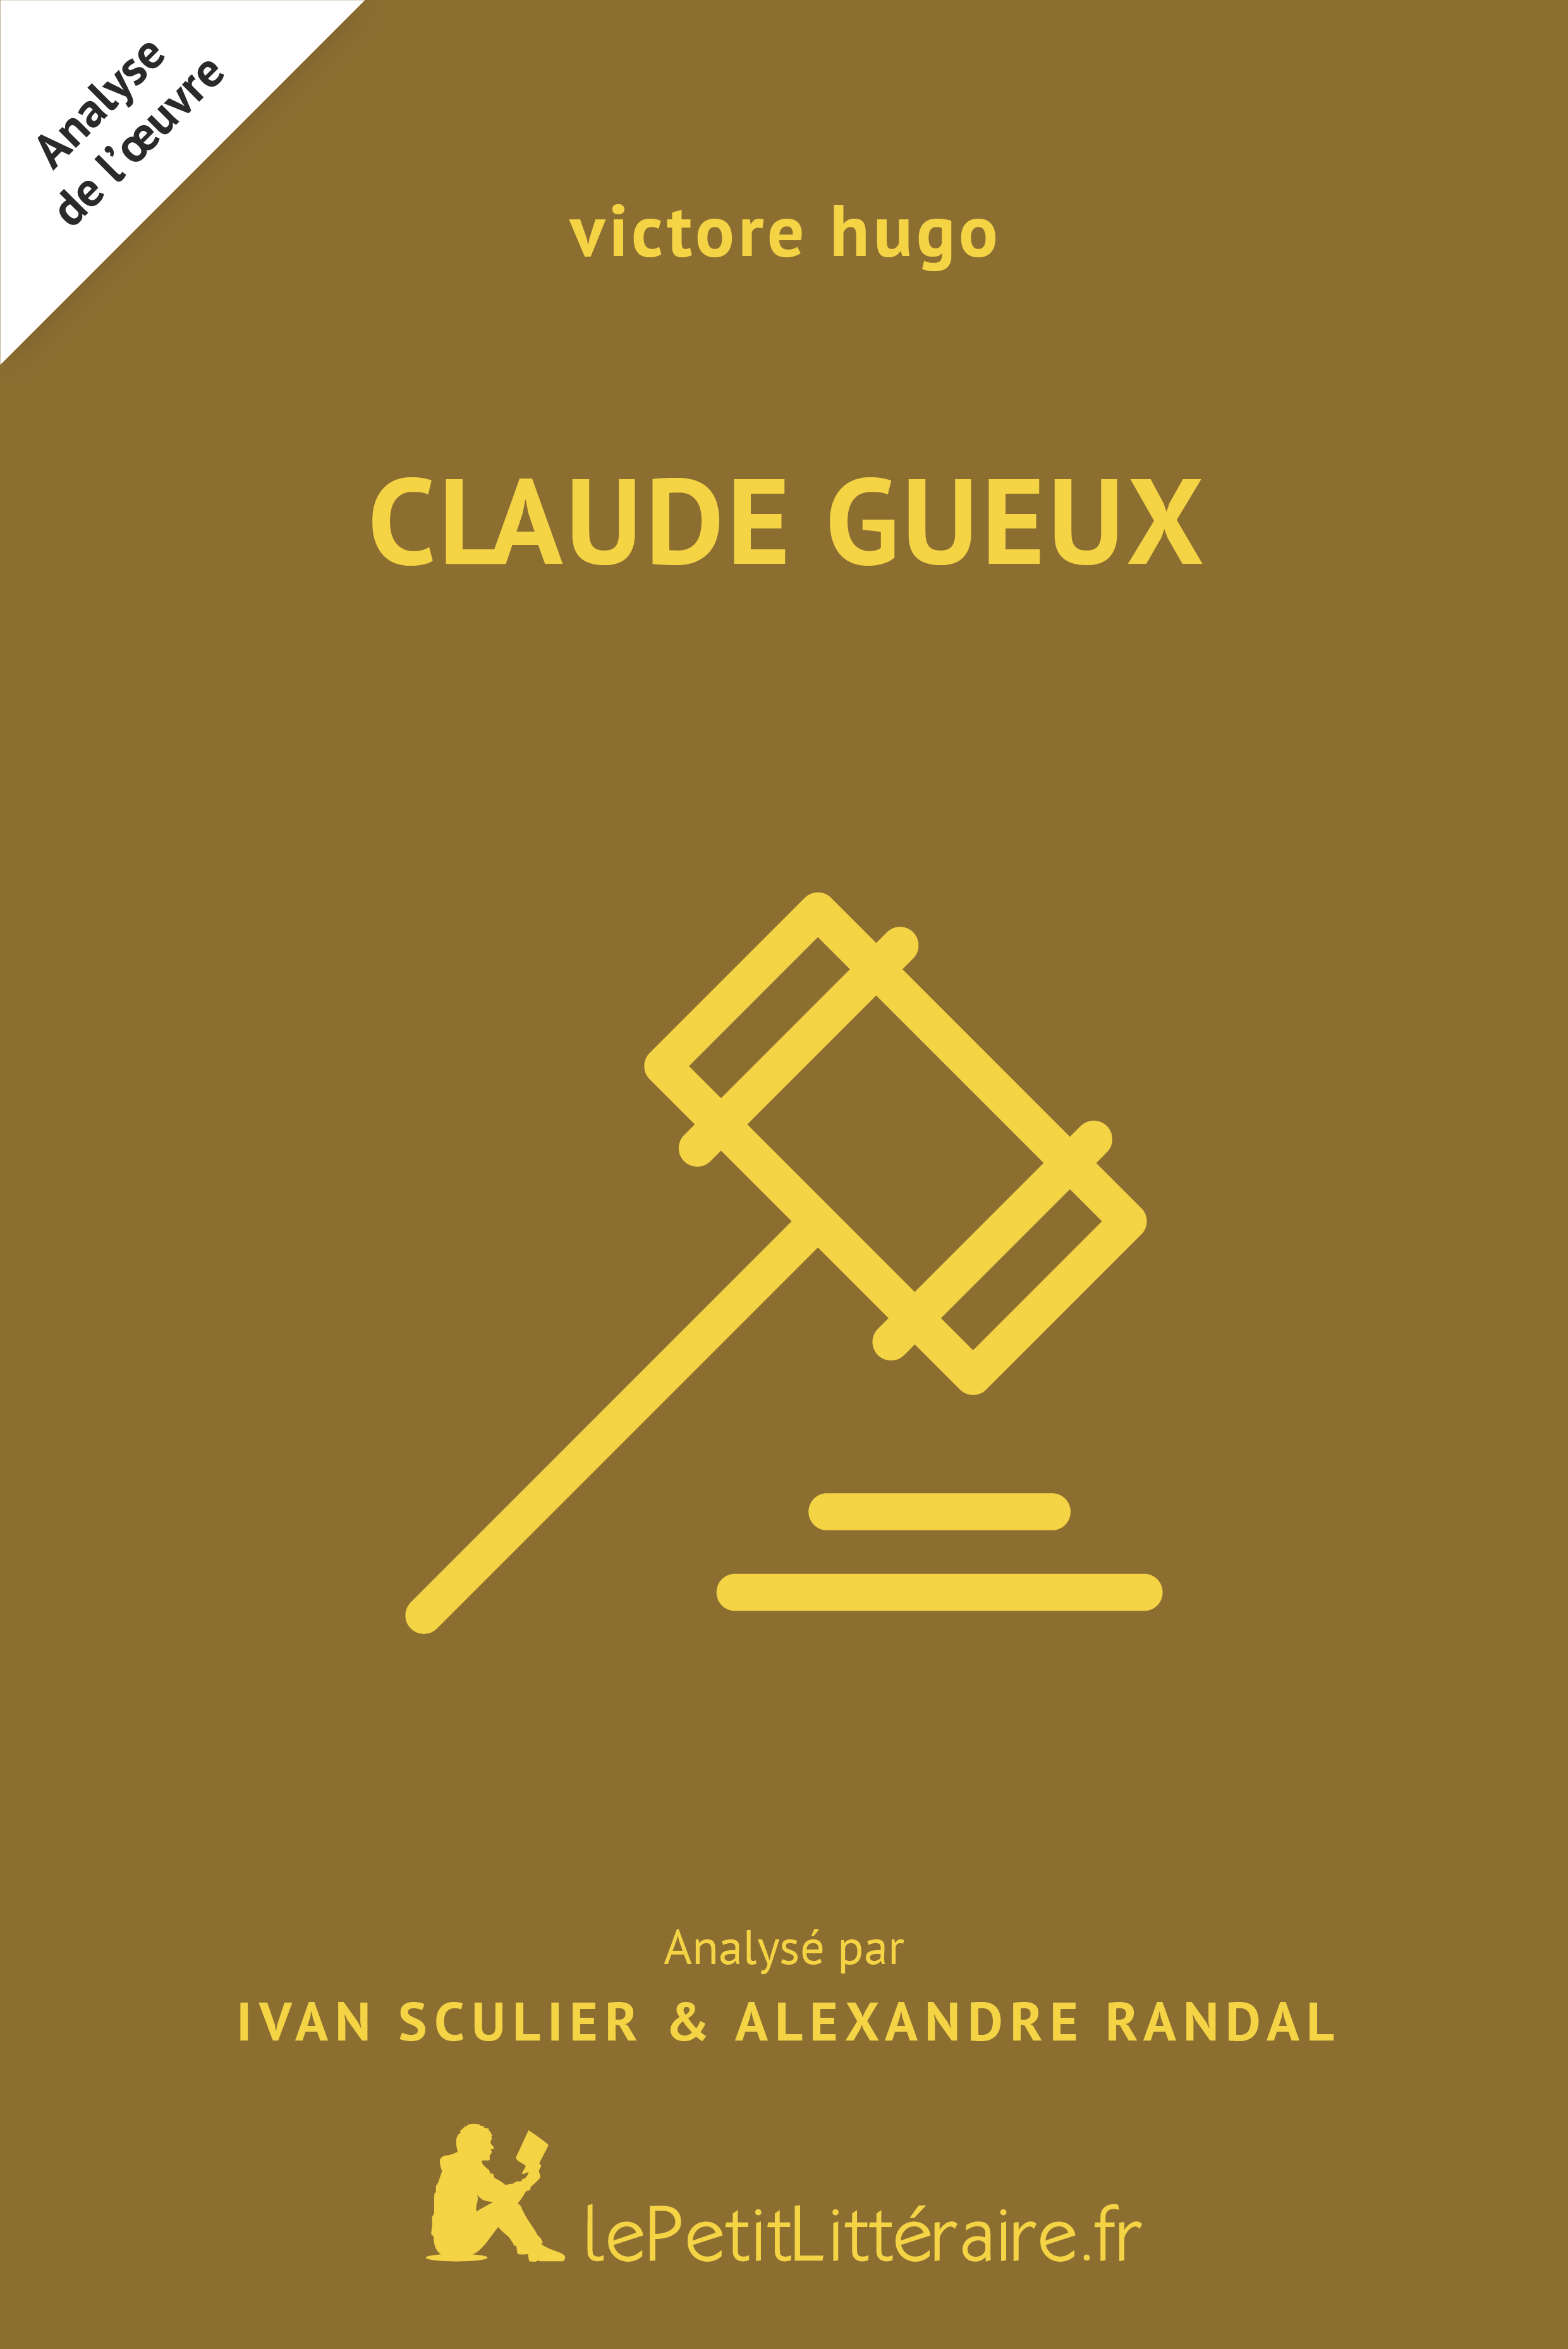 Lepetitlitteraire Fr Claude Gueux Victor Hugo Analyse